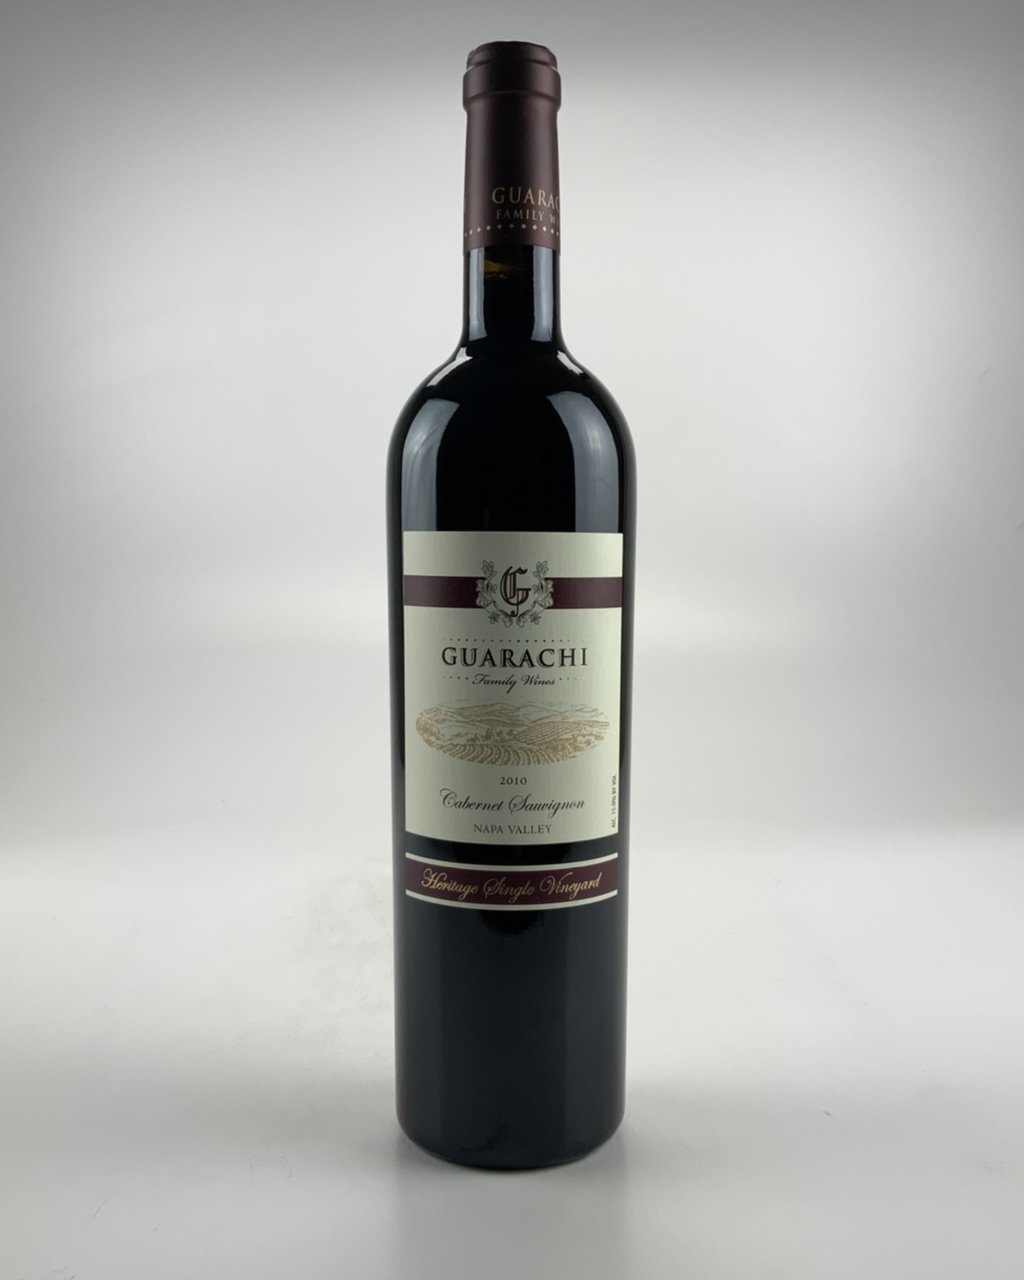 2010 Guarachi Family Wines Cabernet Sauvignon heritage Single Vineyard